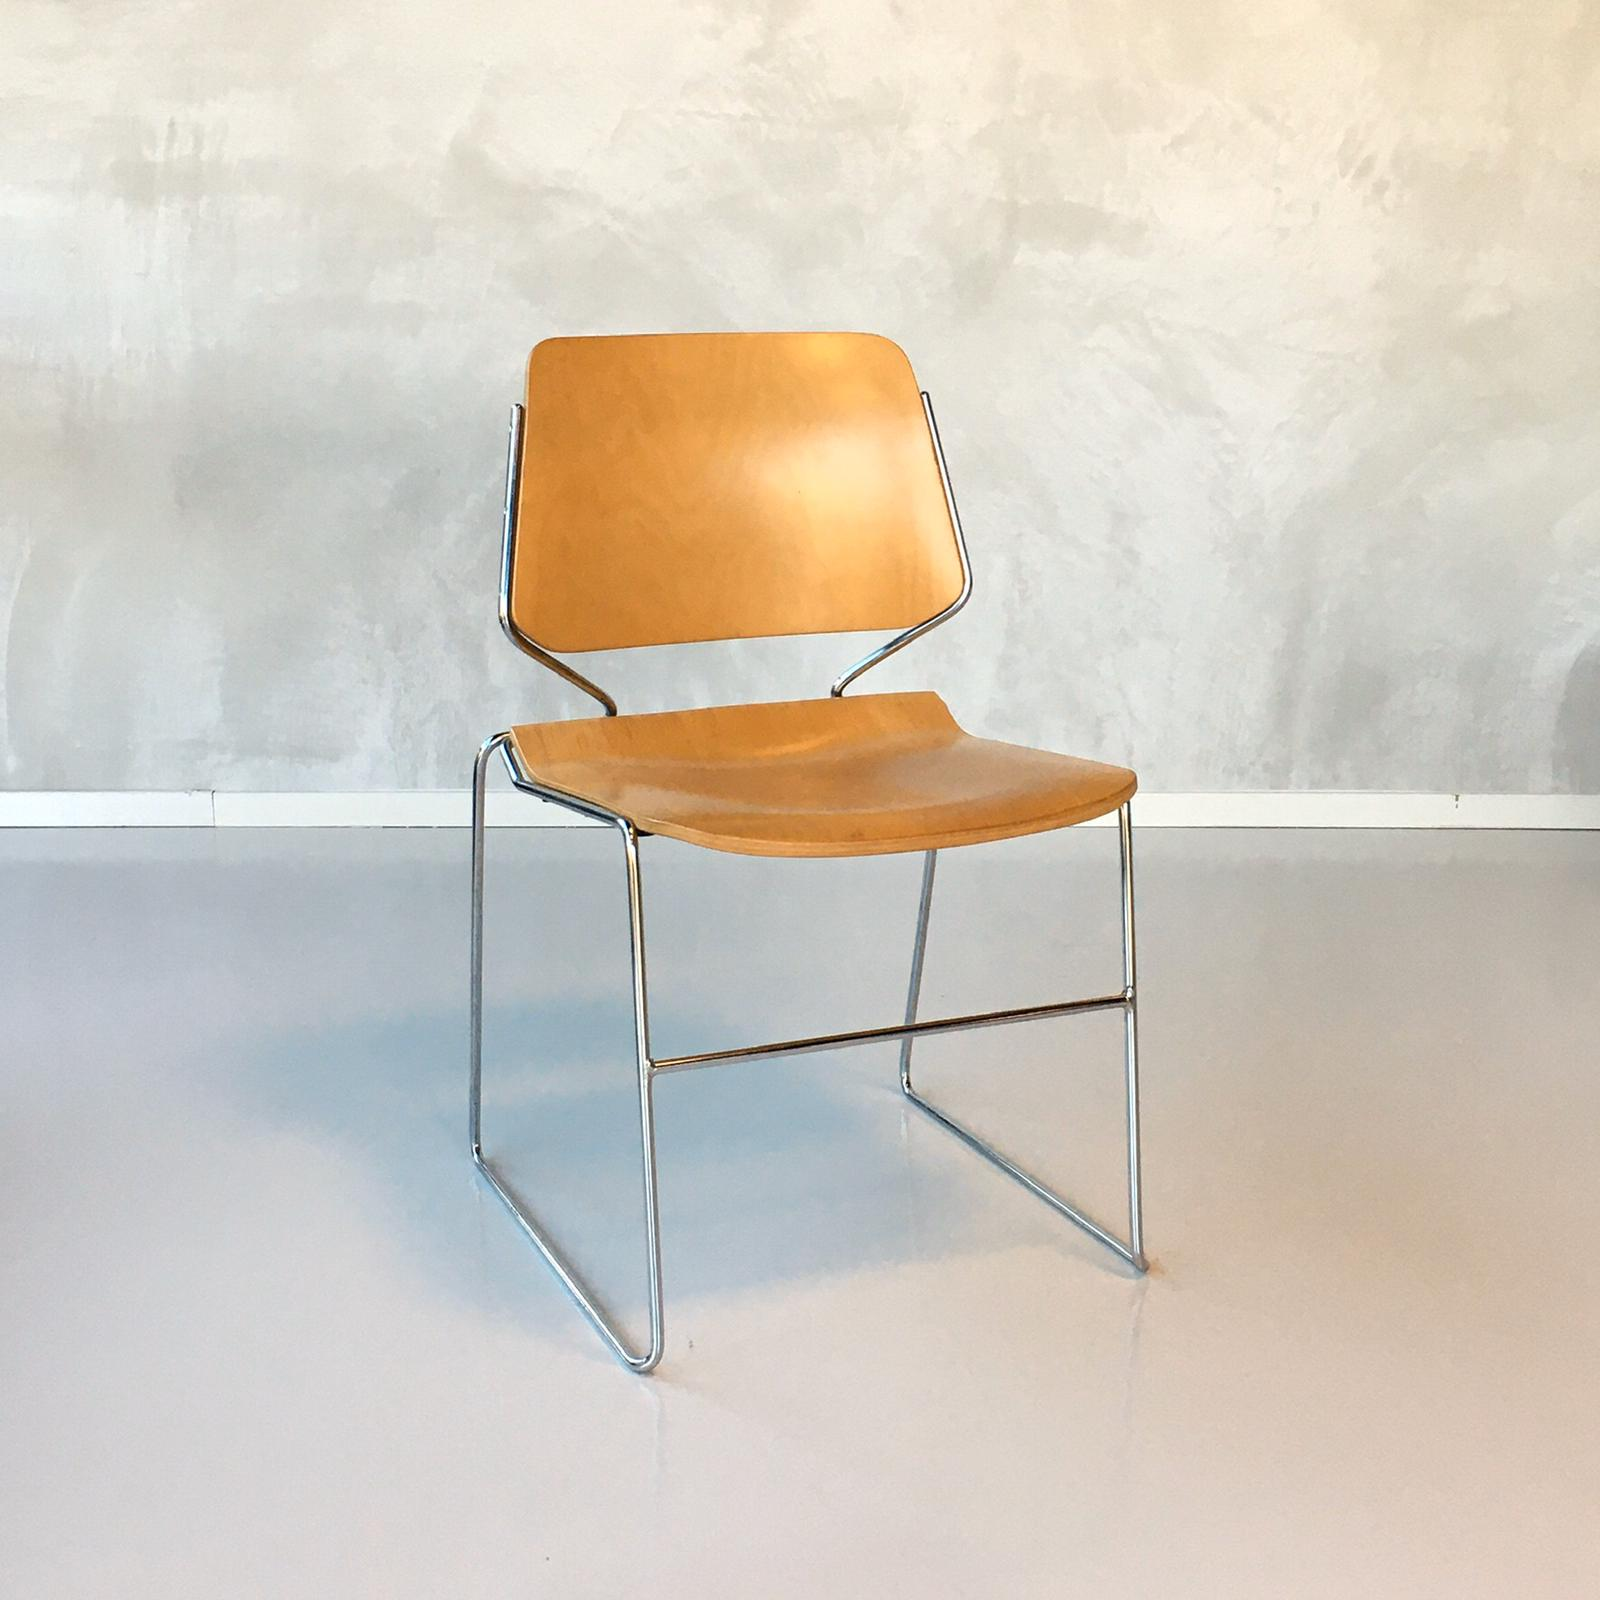 strijk-design-vintage-chair_02